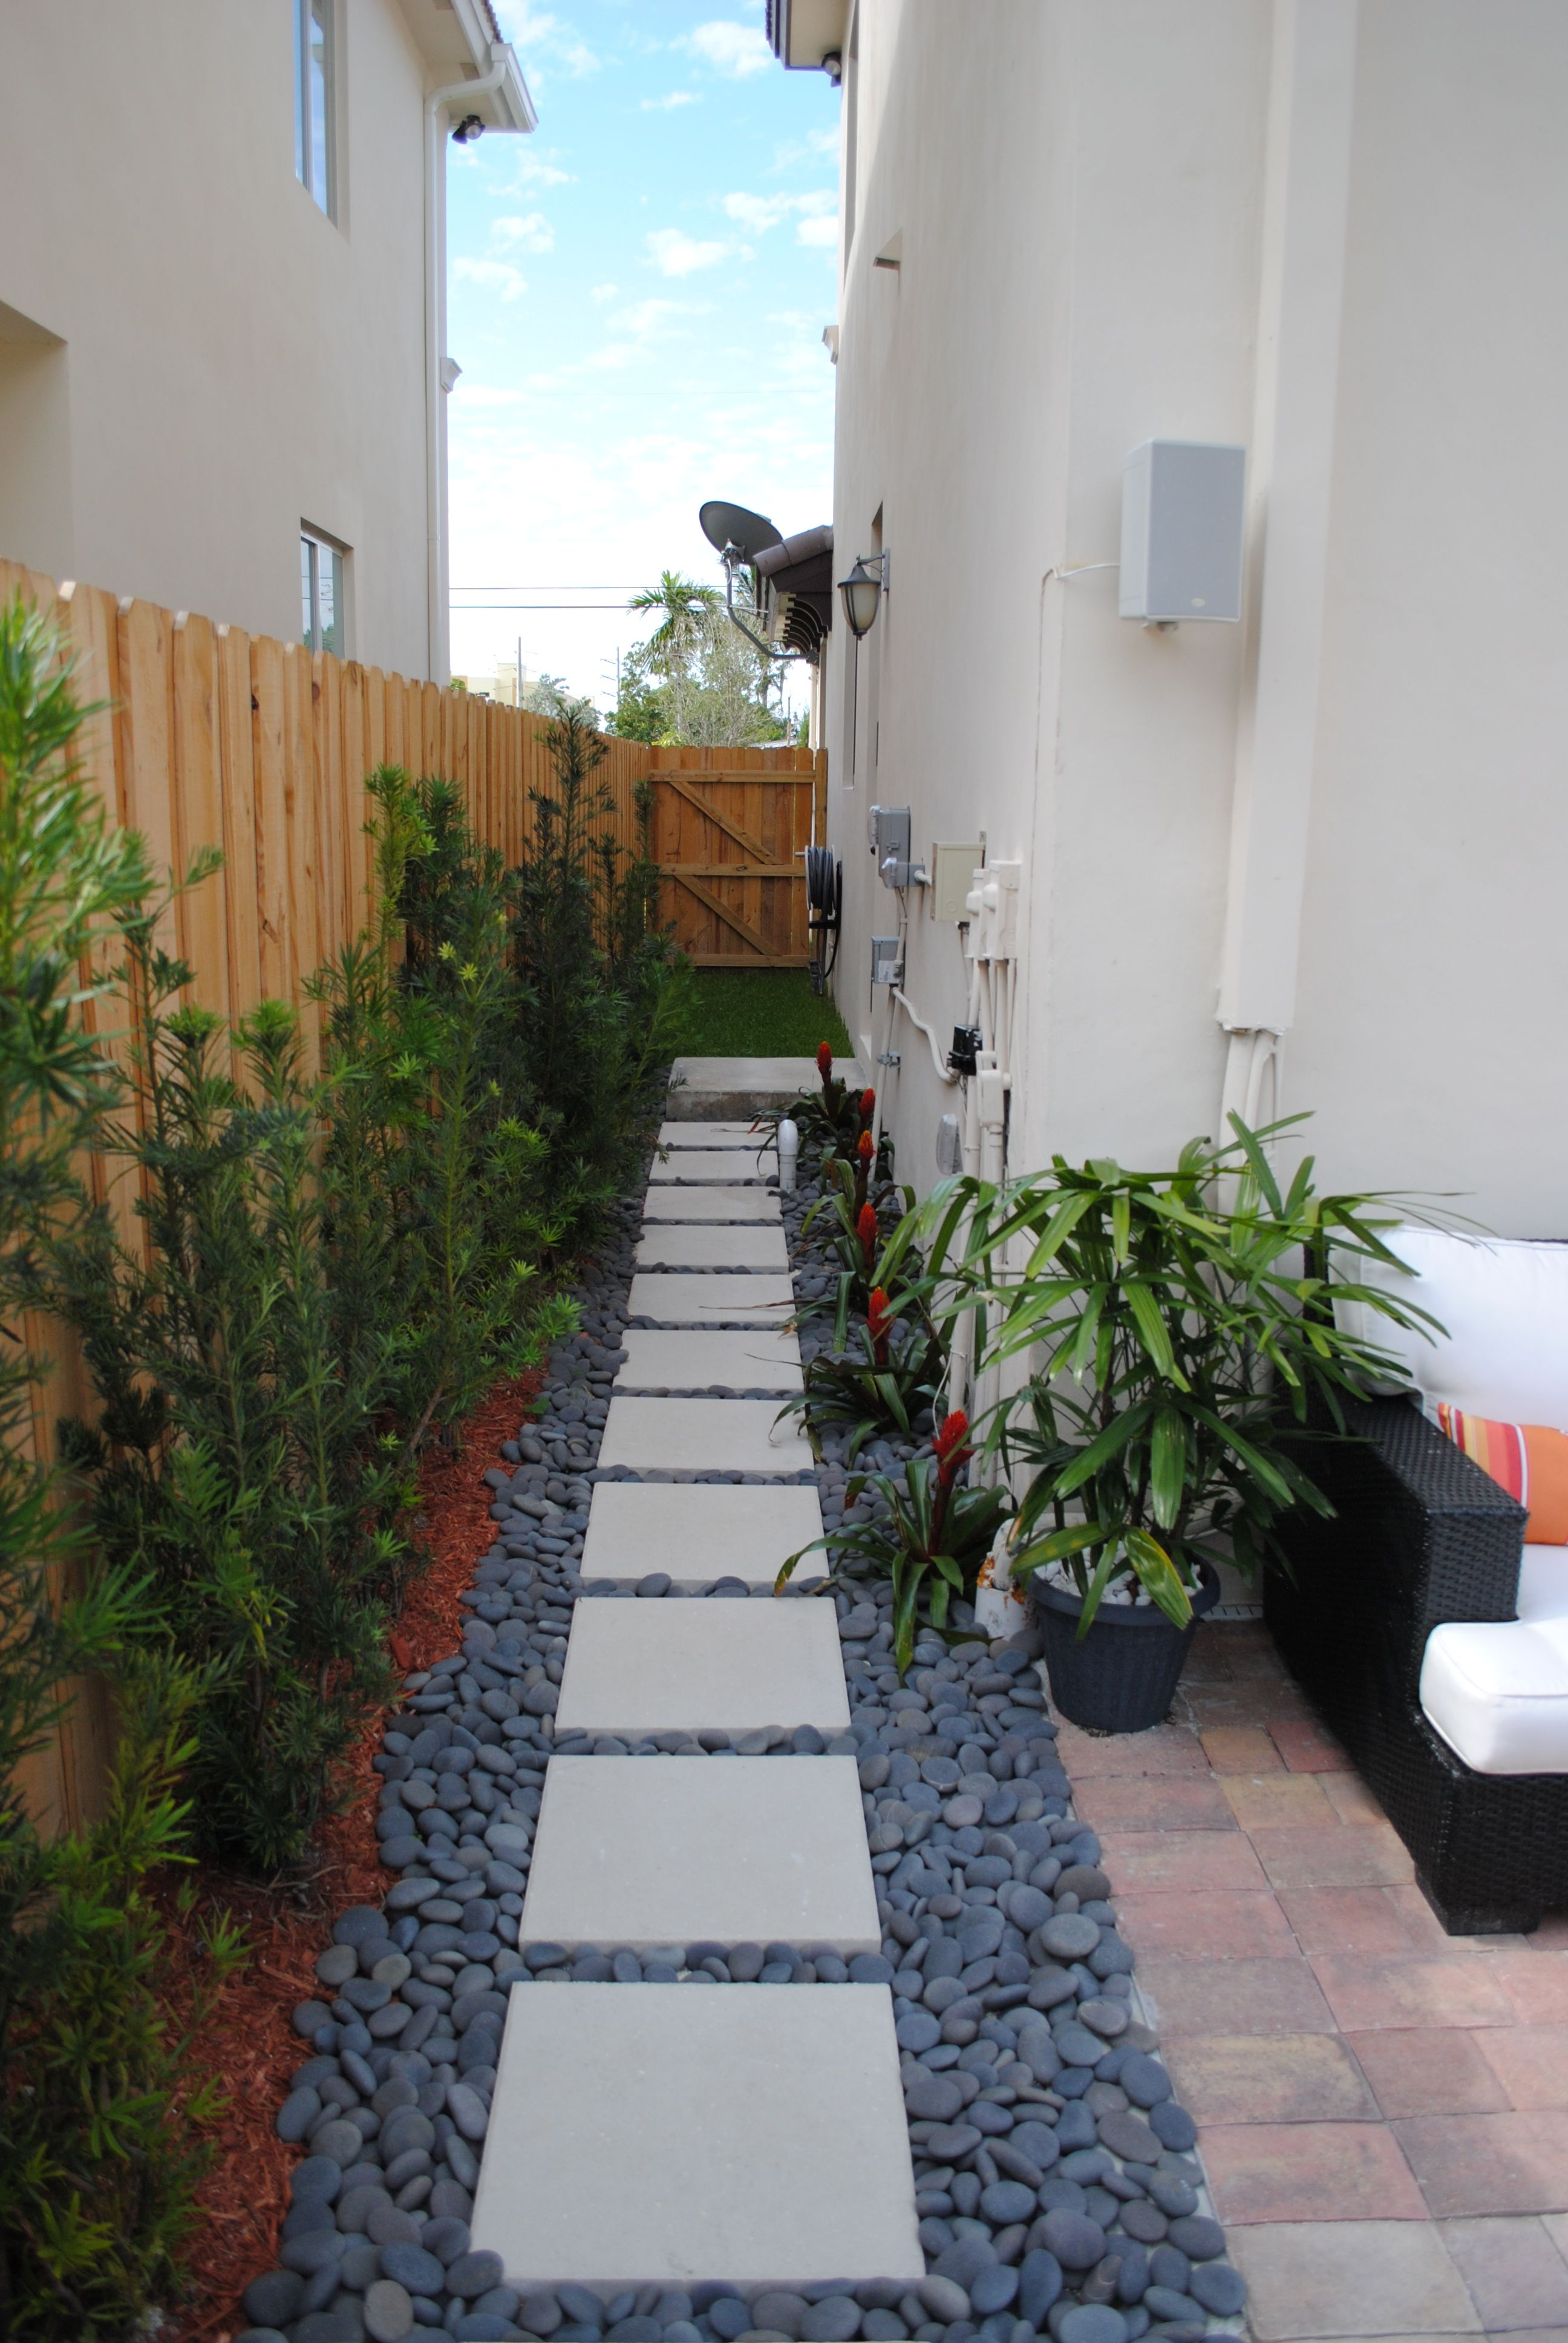 Pin By One Seed On Gardens We Have Built Patio Pavers Design Side Yard Landscaping Outdoor Patio Decor